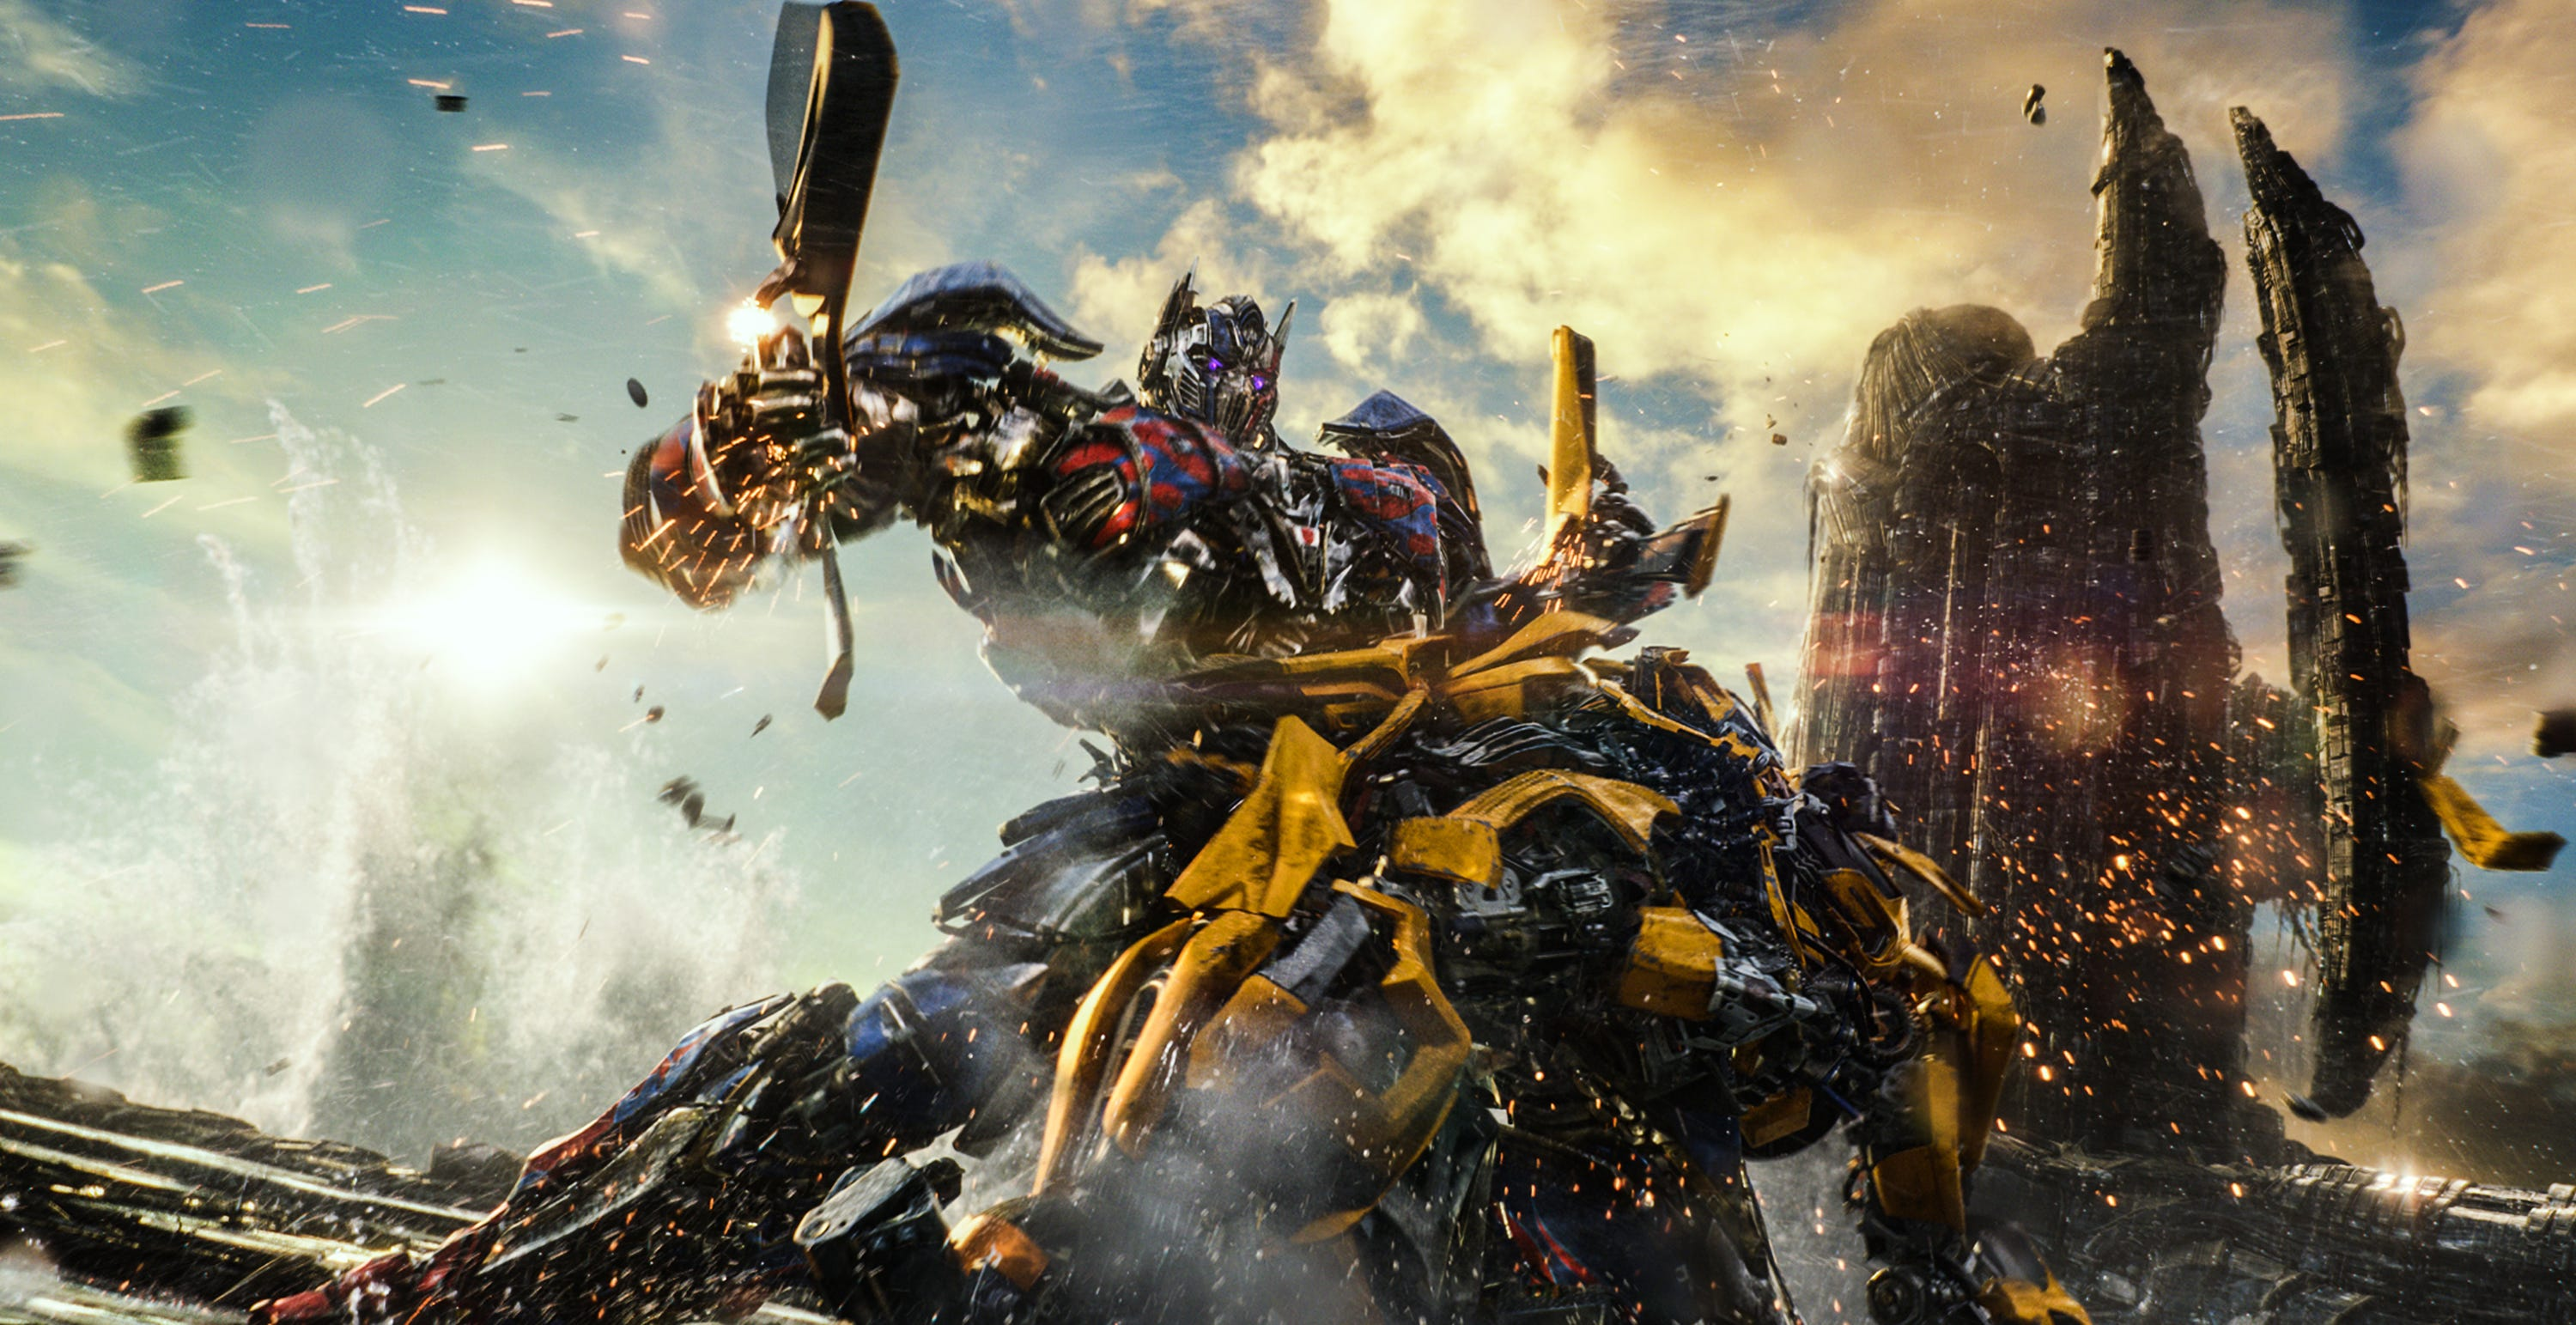 transformers all seven movies including bumblebee ranked rh usatoday com